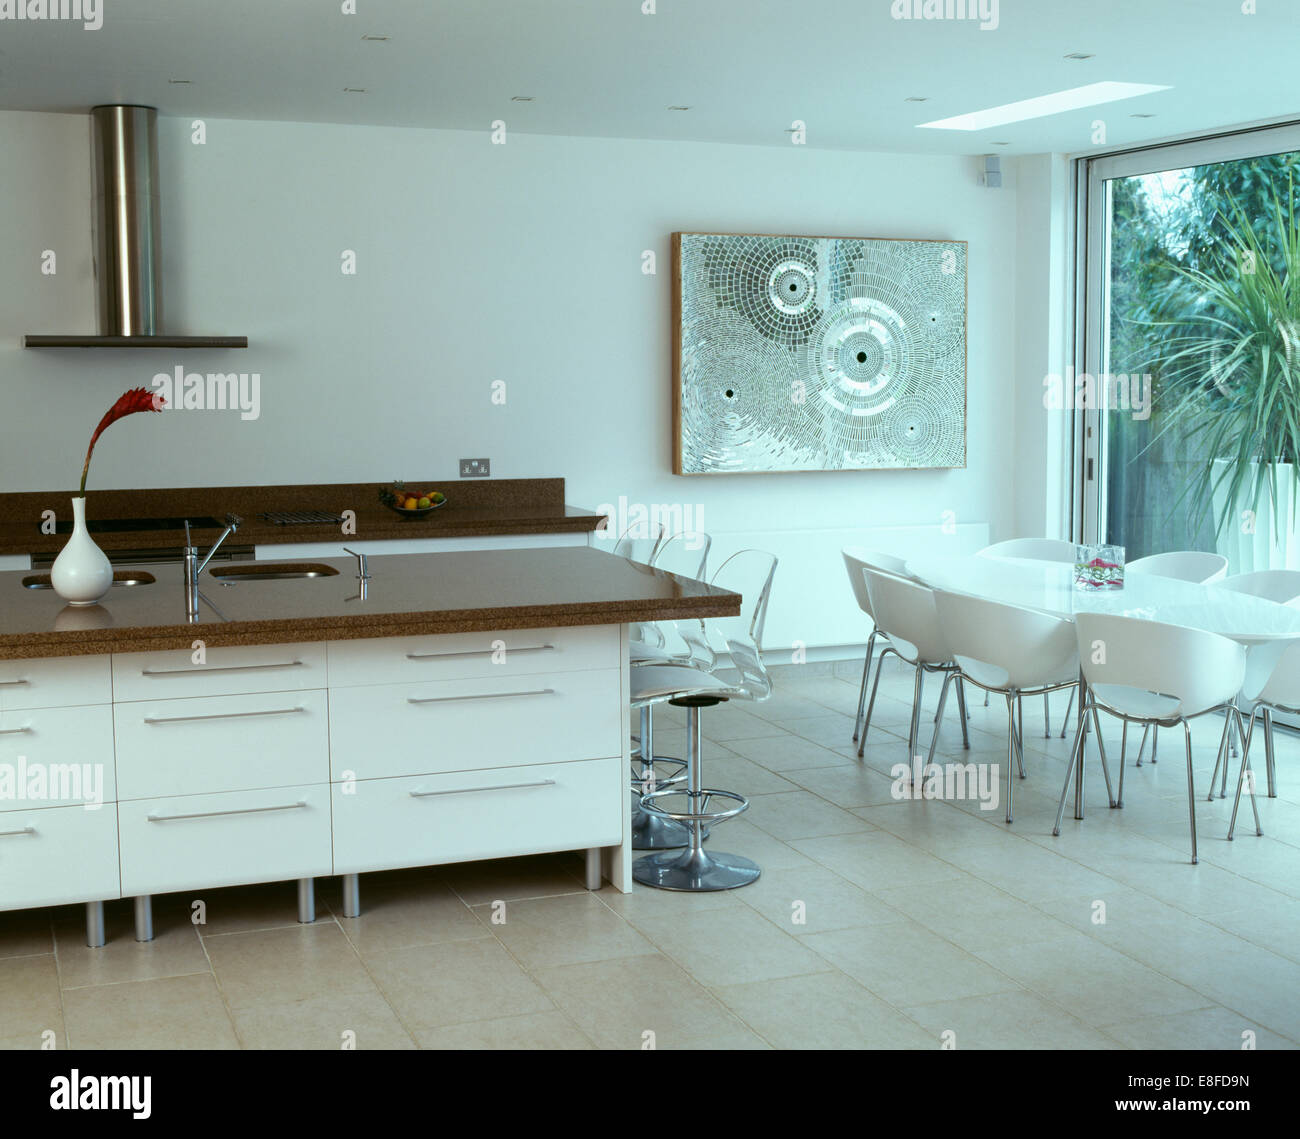 Perspex stools at breakfast bar in large modern kitchen with mosaic ...